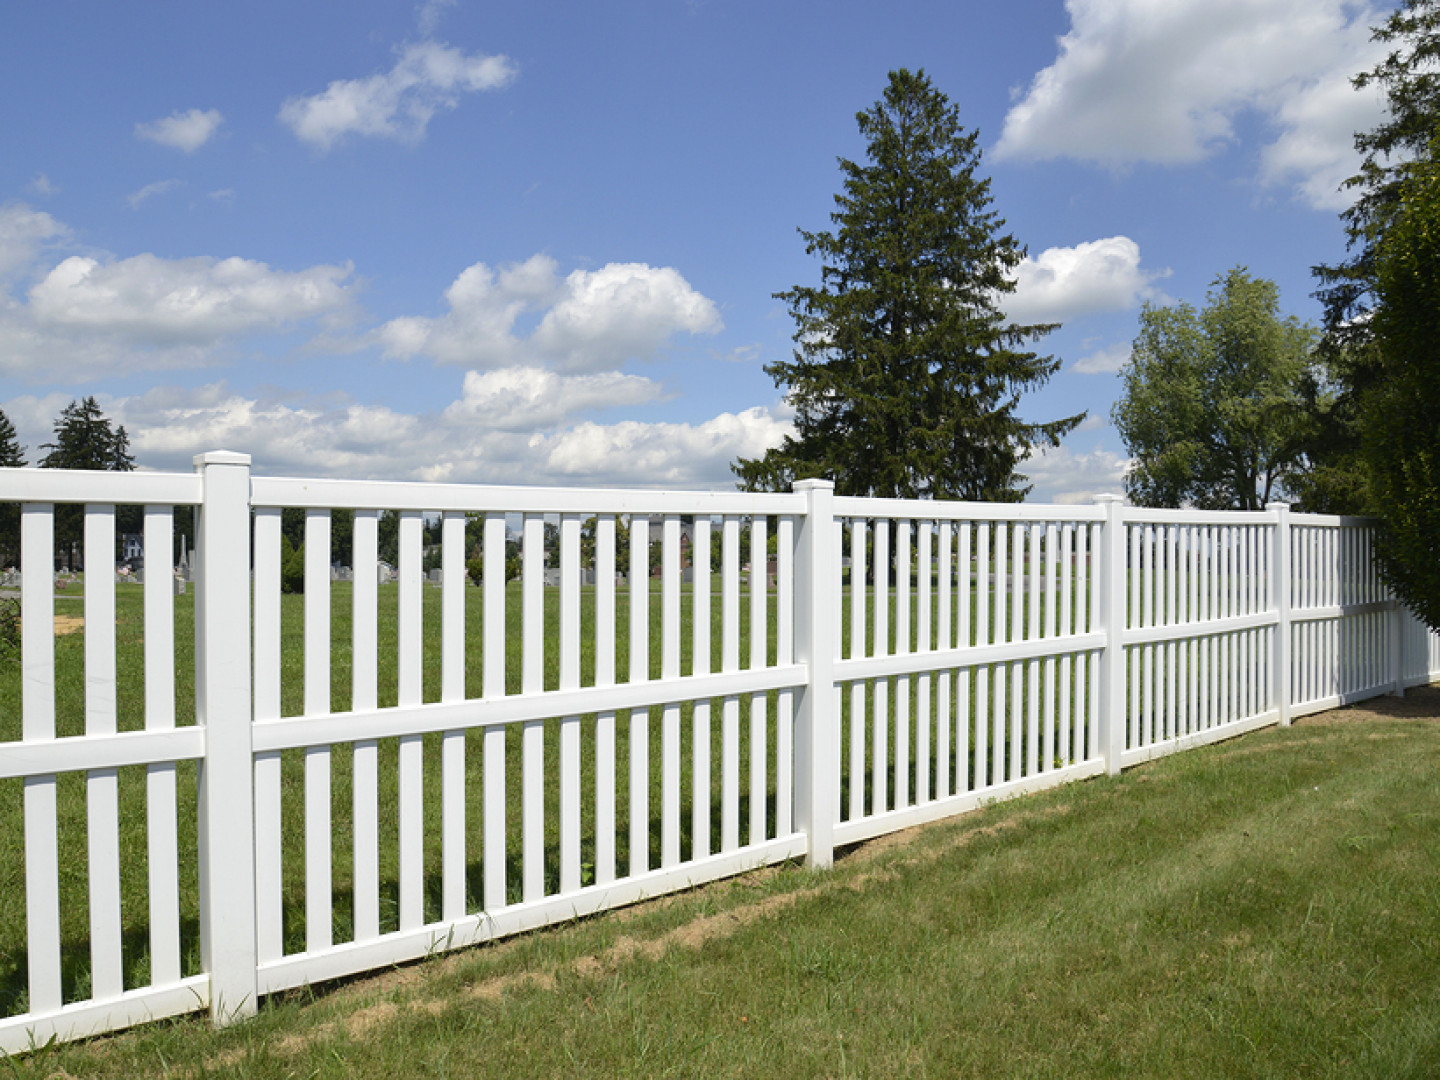 Vinyl fencing is a popular choice for homeowners